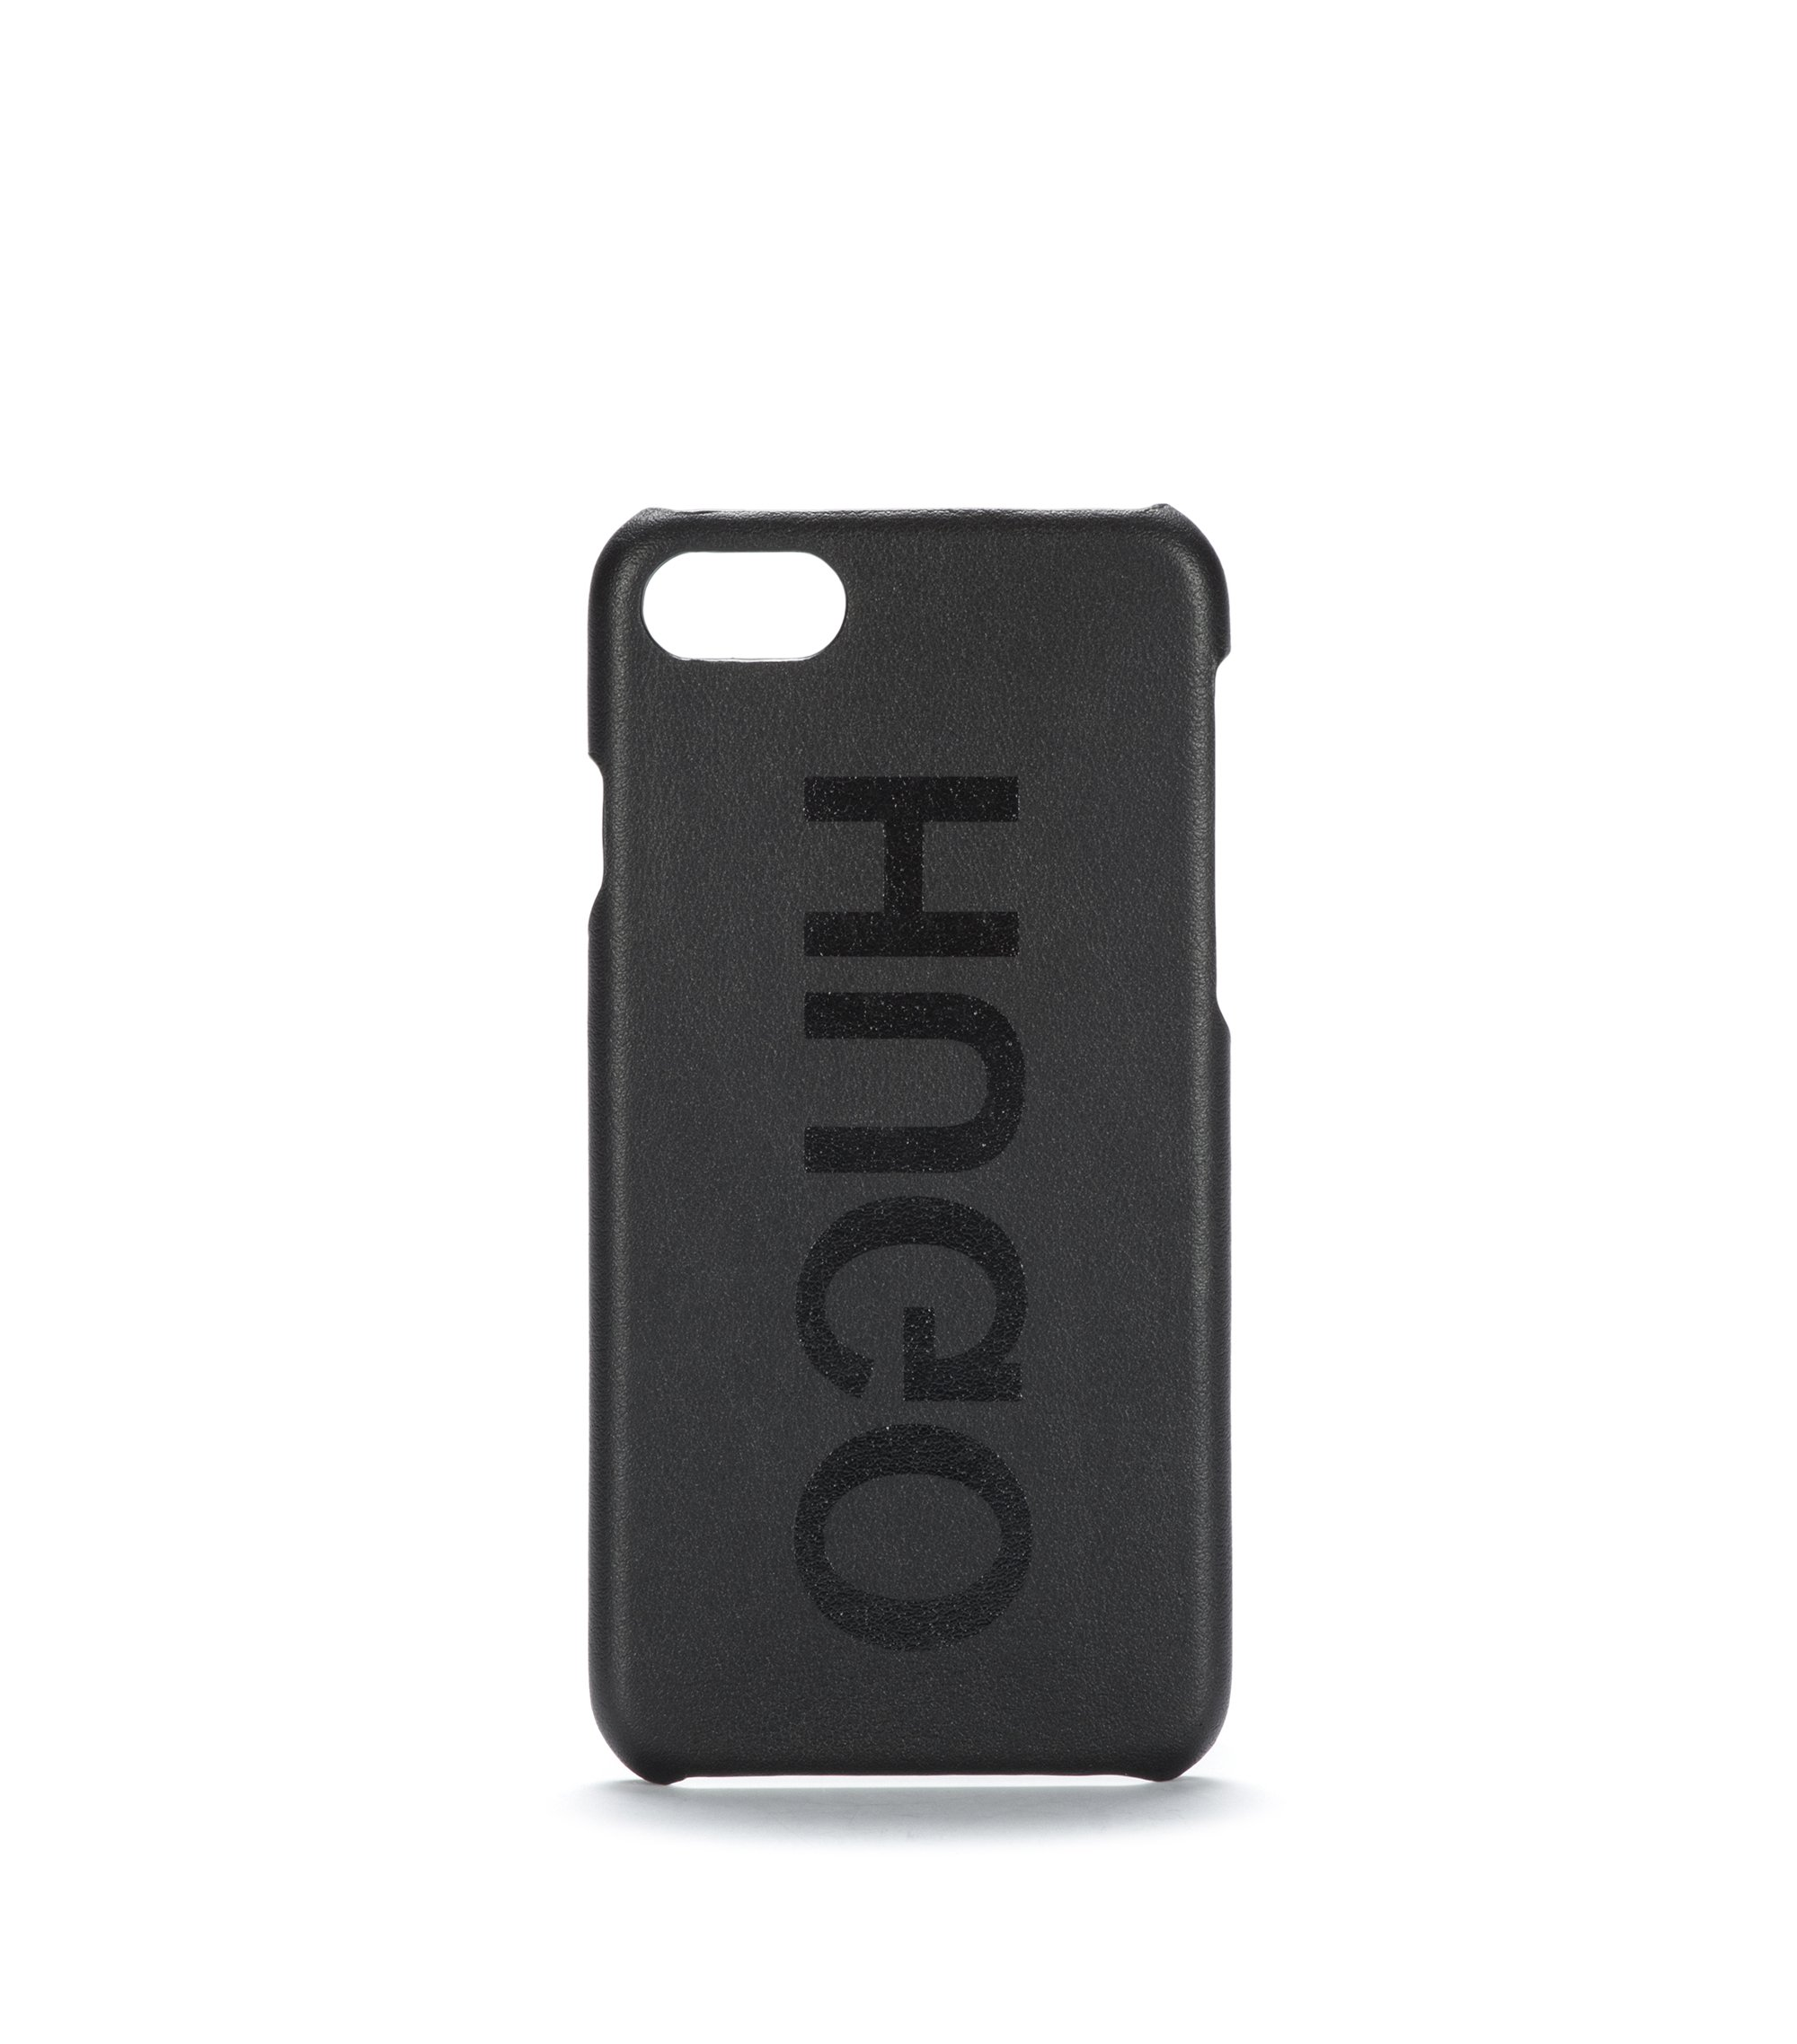 Funda de iPhone 8 en piel italiana con logo invertido, Negro